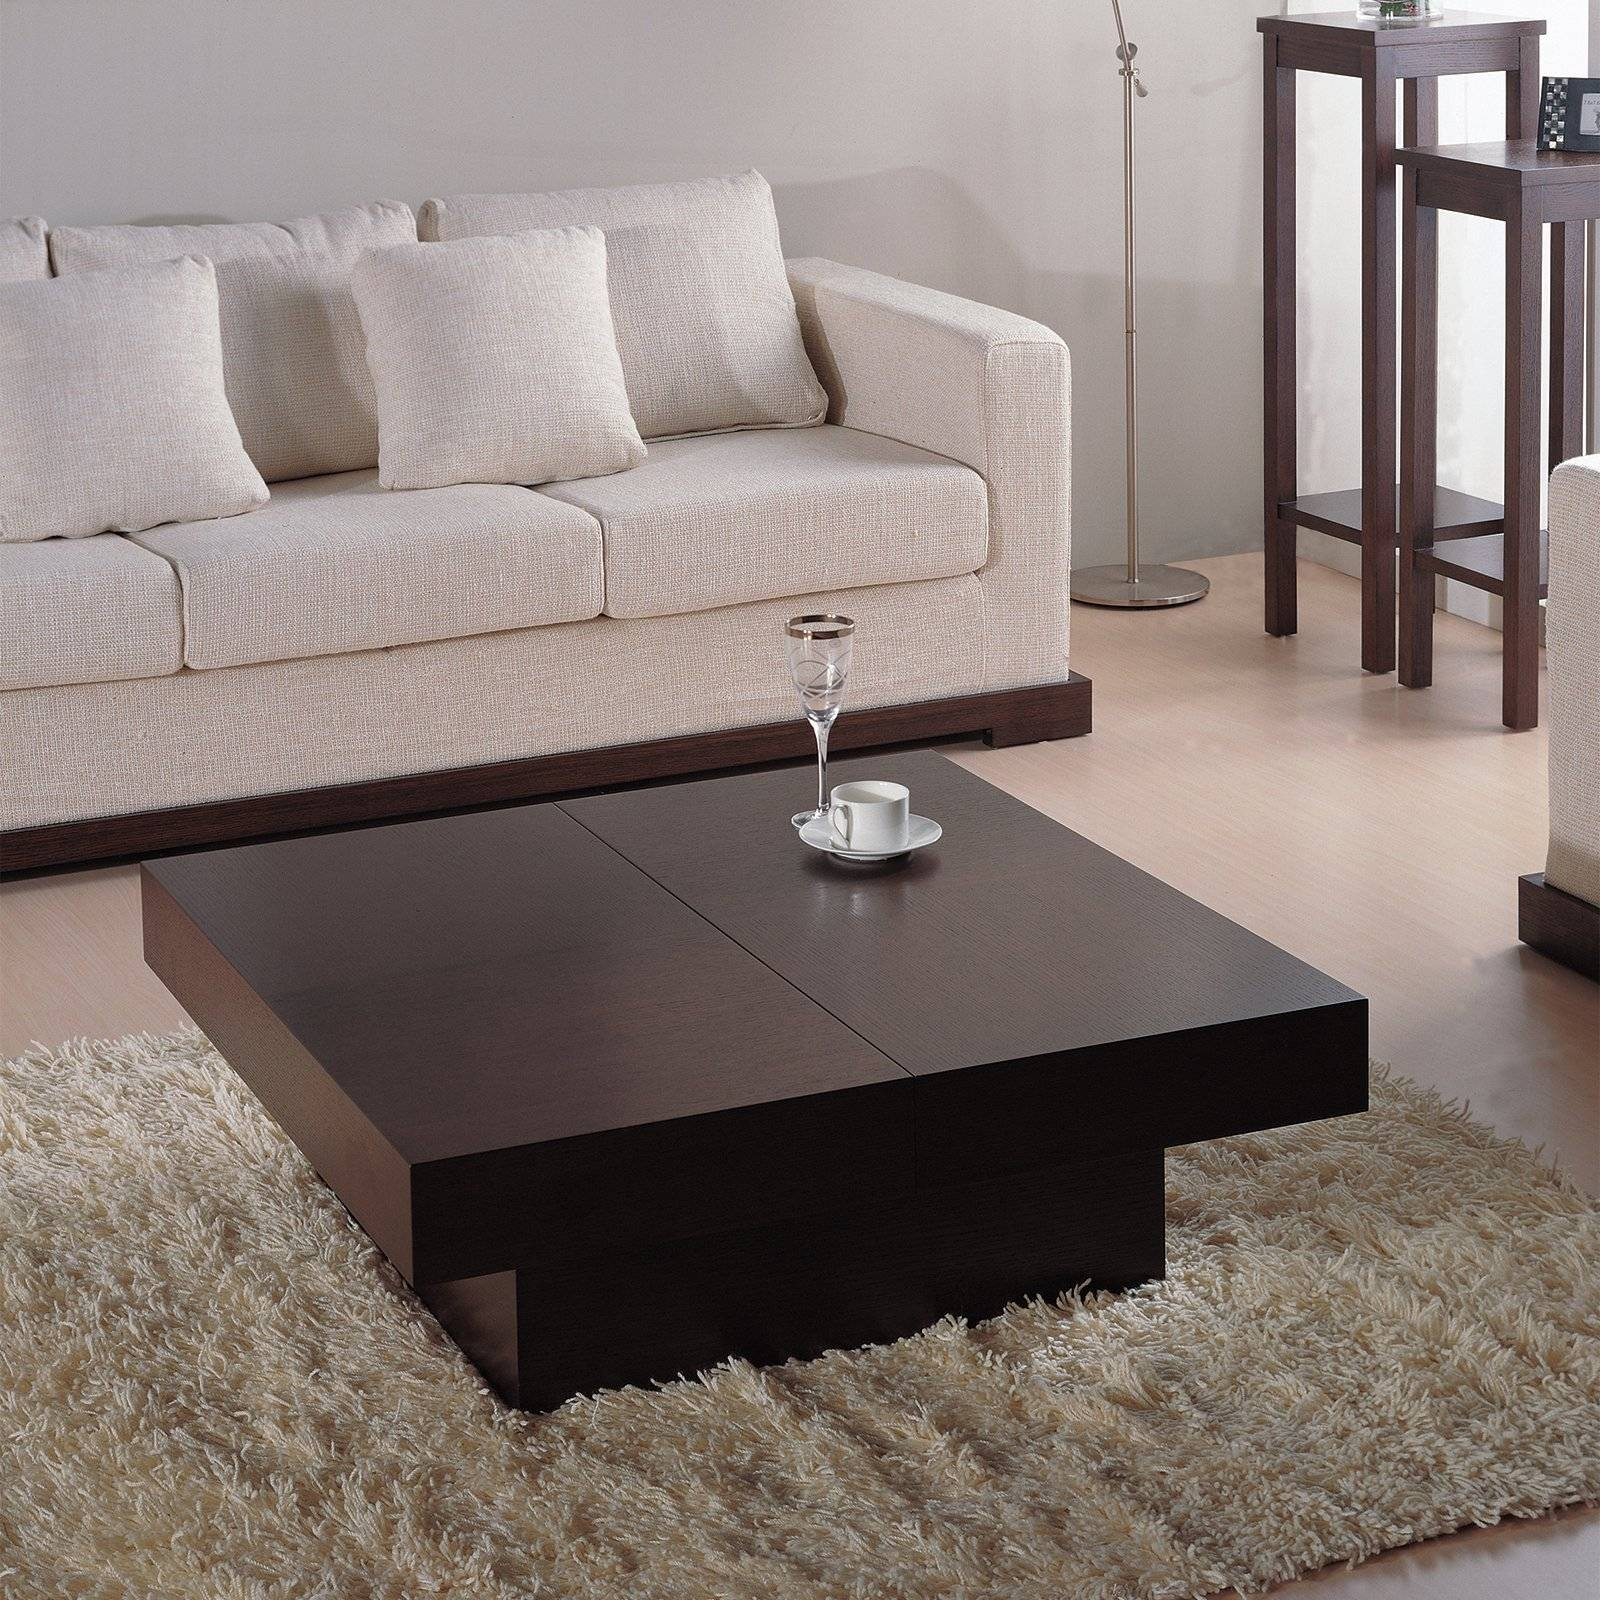 Furniture Of America Pagoda Coffee Table | Hayneedle in Quality Coffee Tables (Image 13 of 30)